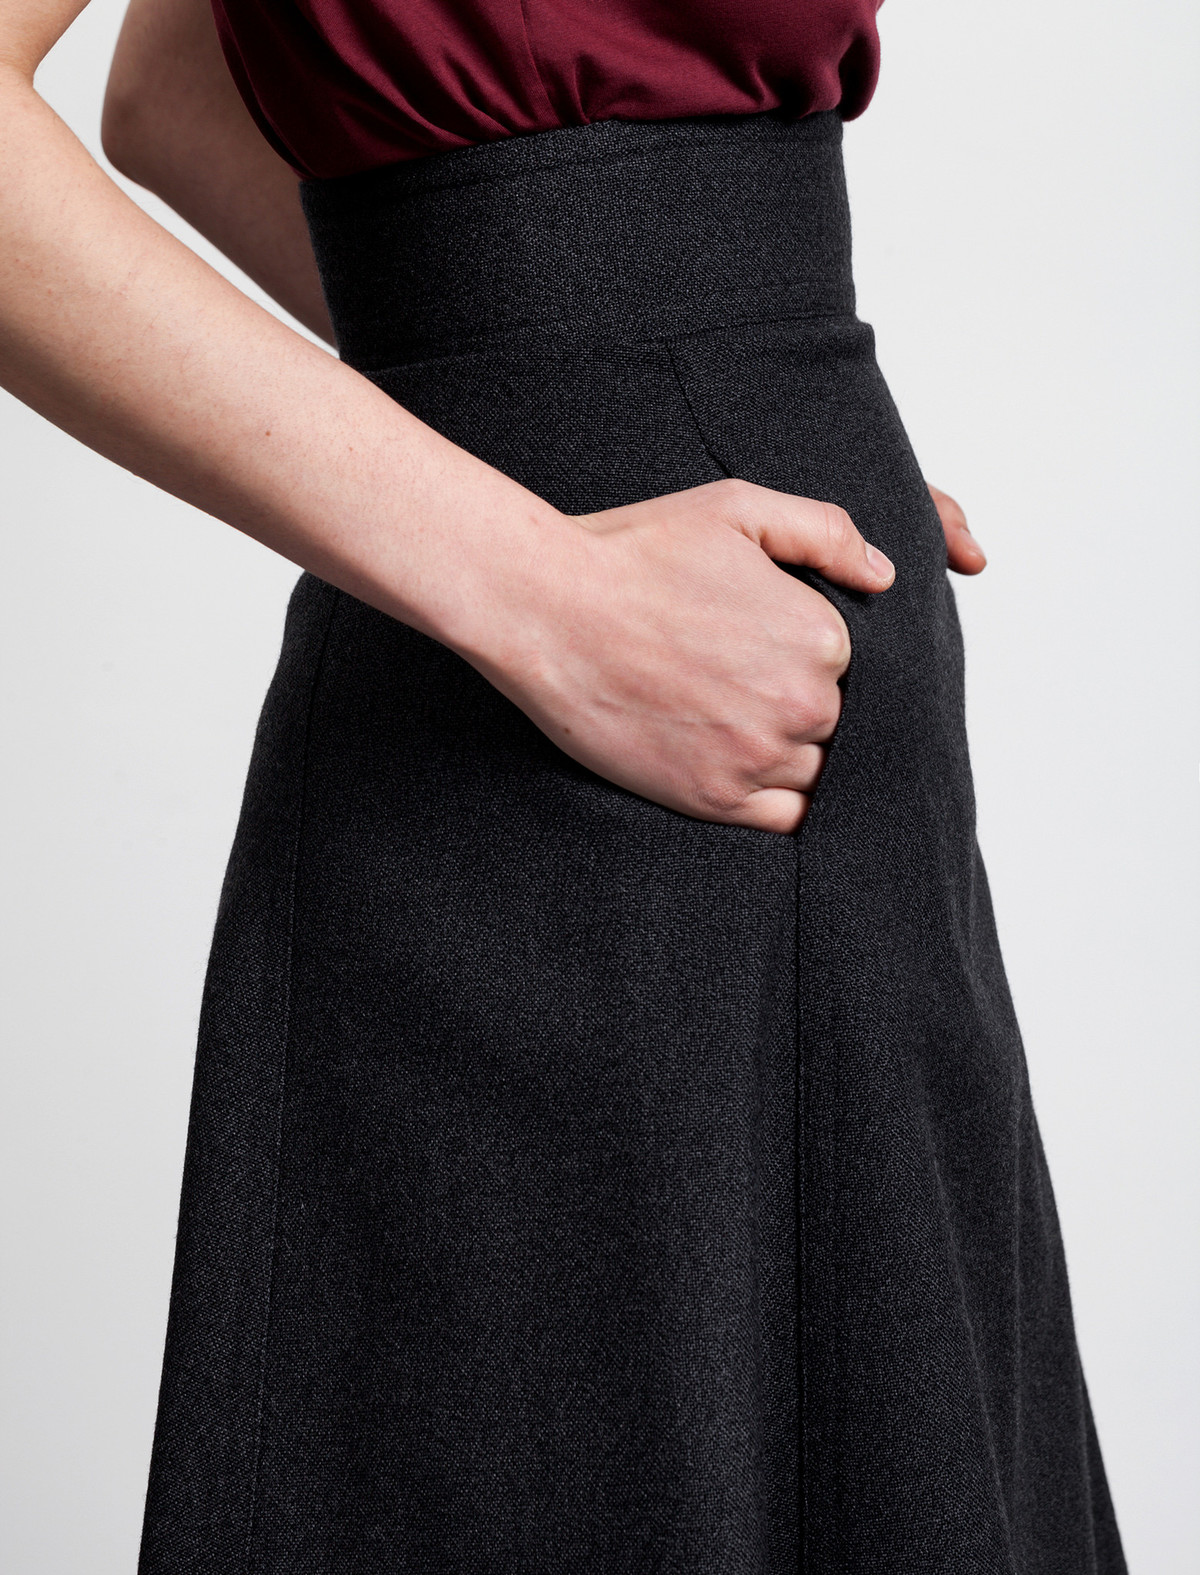 Shop for high waisted skirt at downloadsolutionspa5tr.gq Free Shipping. Free Returns. All the time.